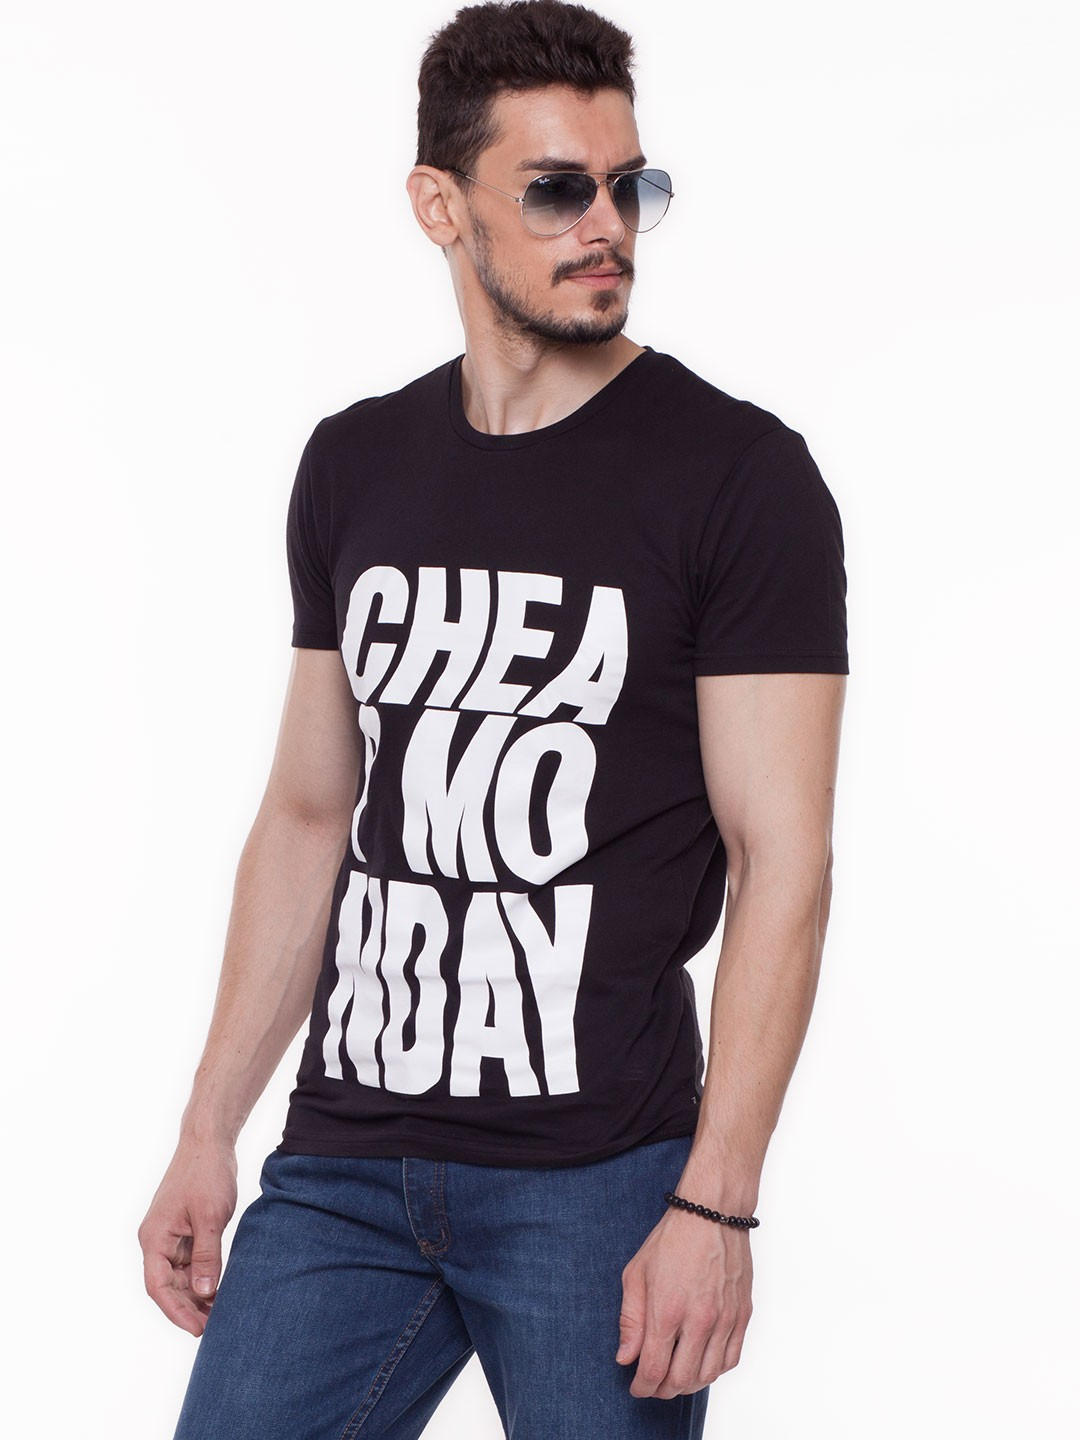 Buy cheap monday wavy logo print t shirt for men men 39 s for Cheap print t shirts